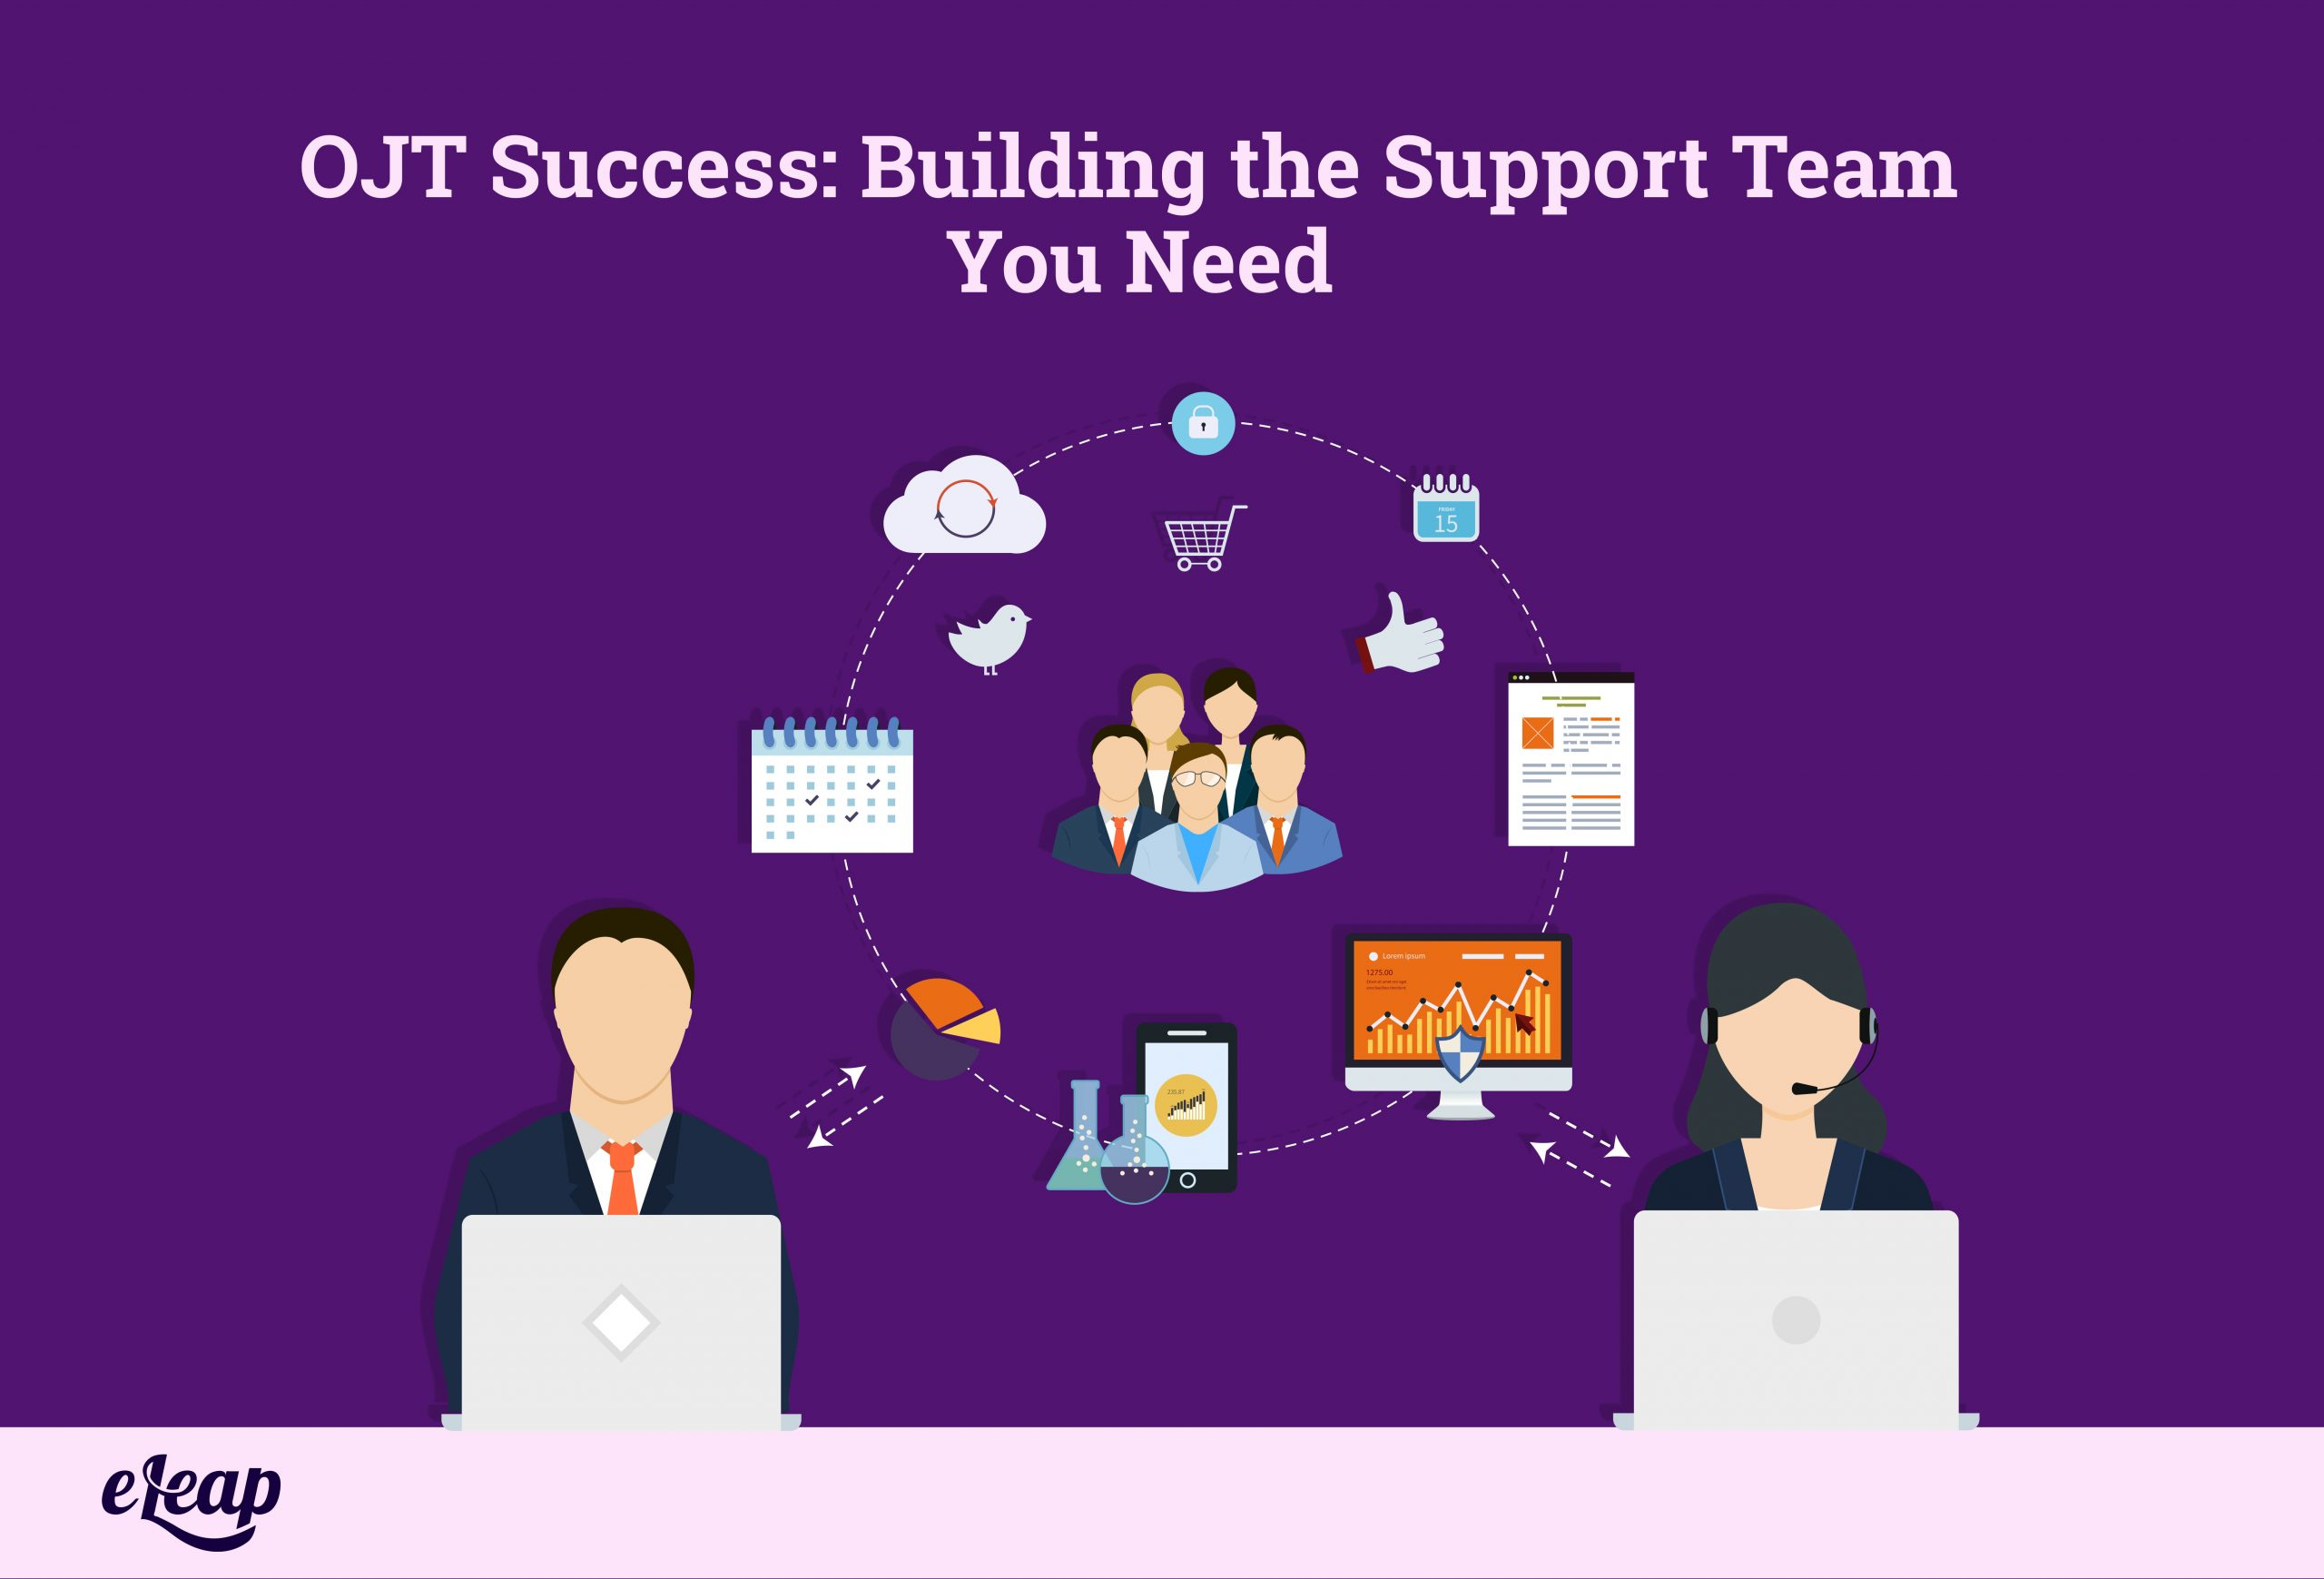 OJT Success: Building the Support Team You Need